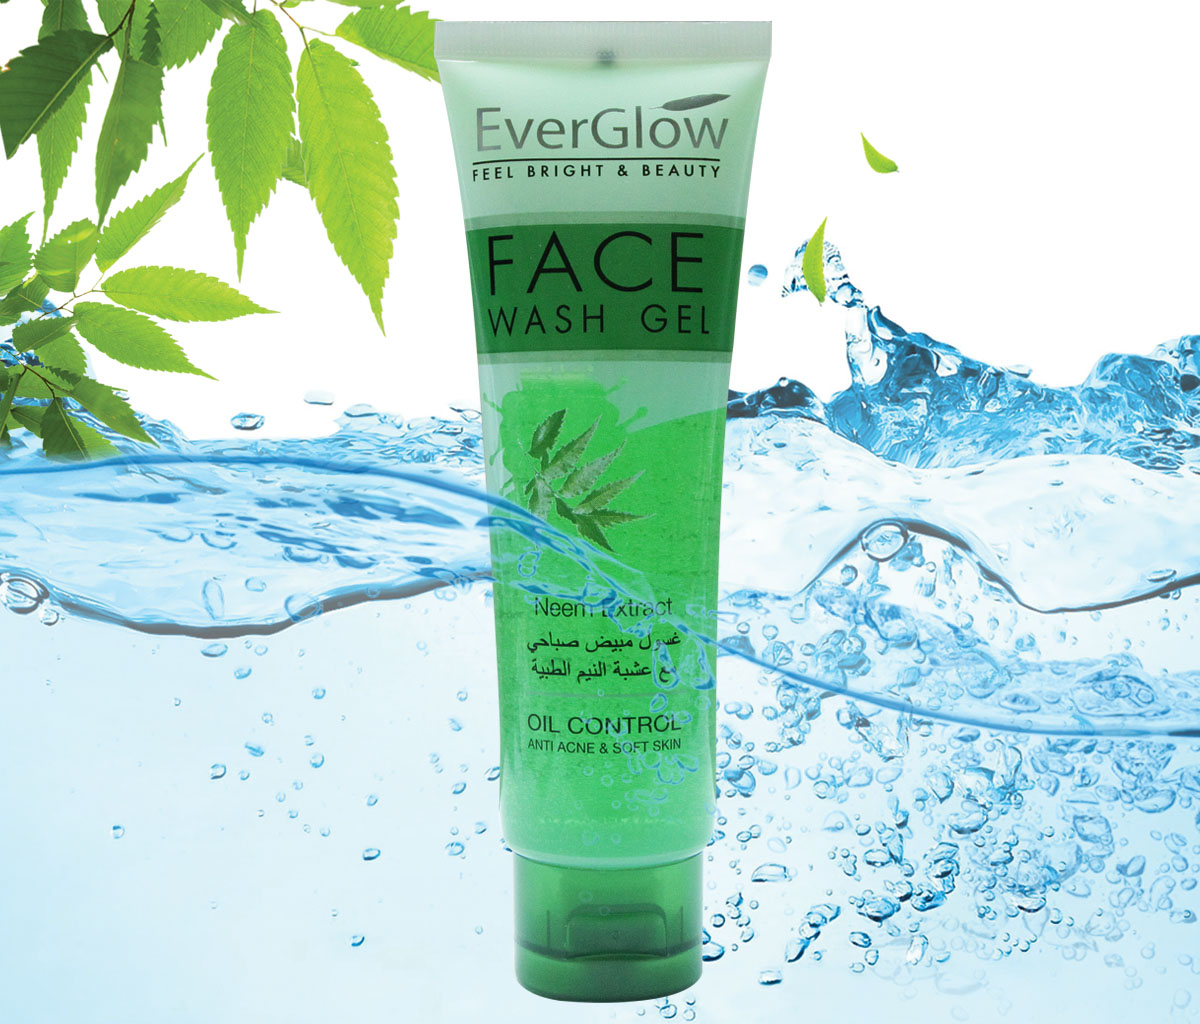 Ever Glow Neem Extract Face Wash Gel